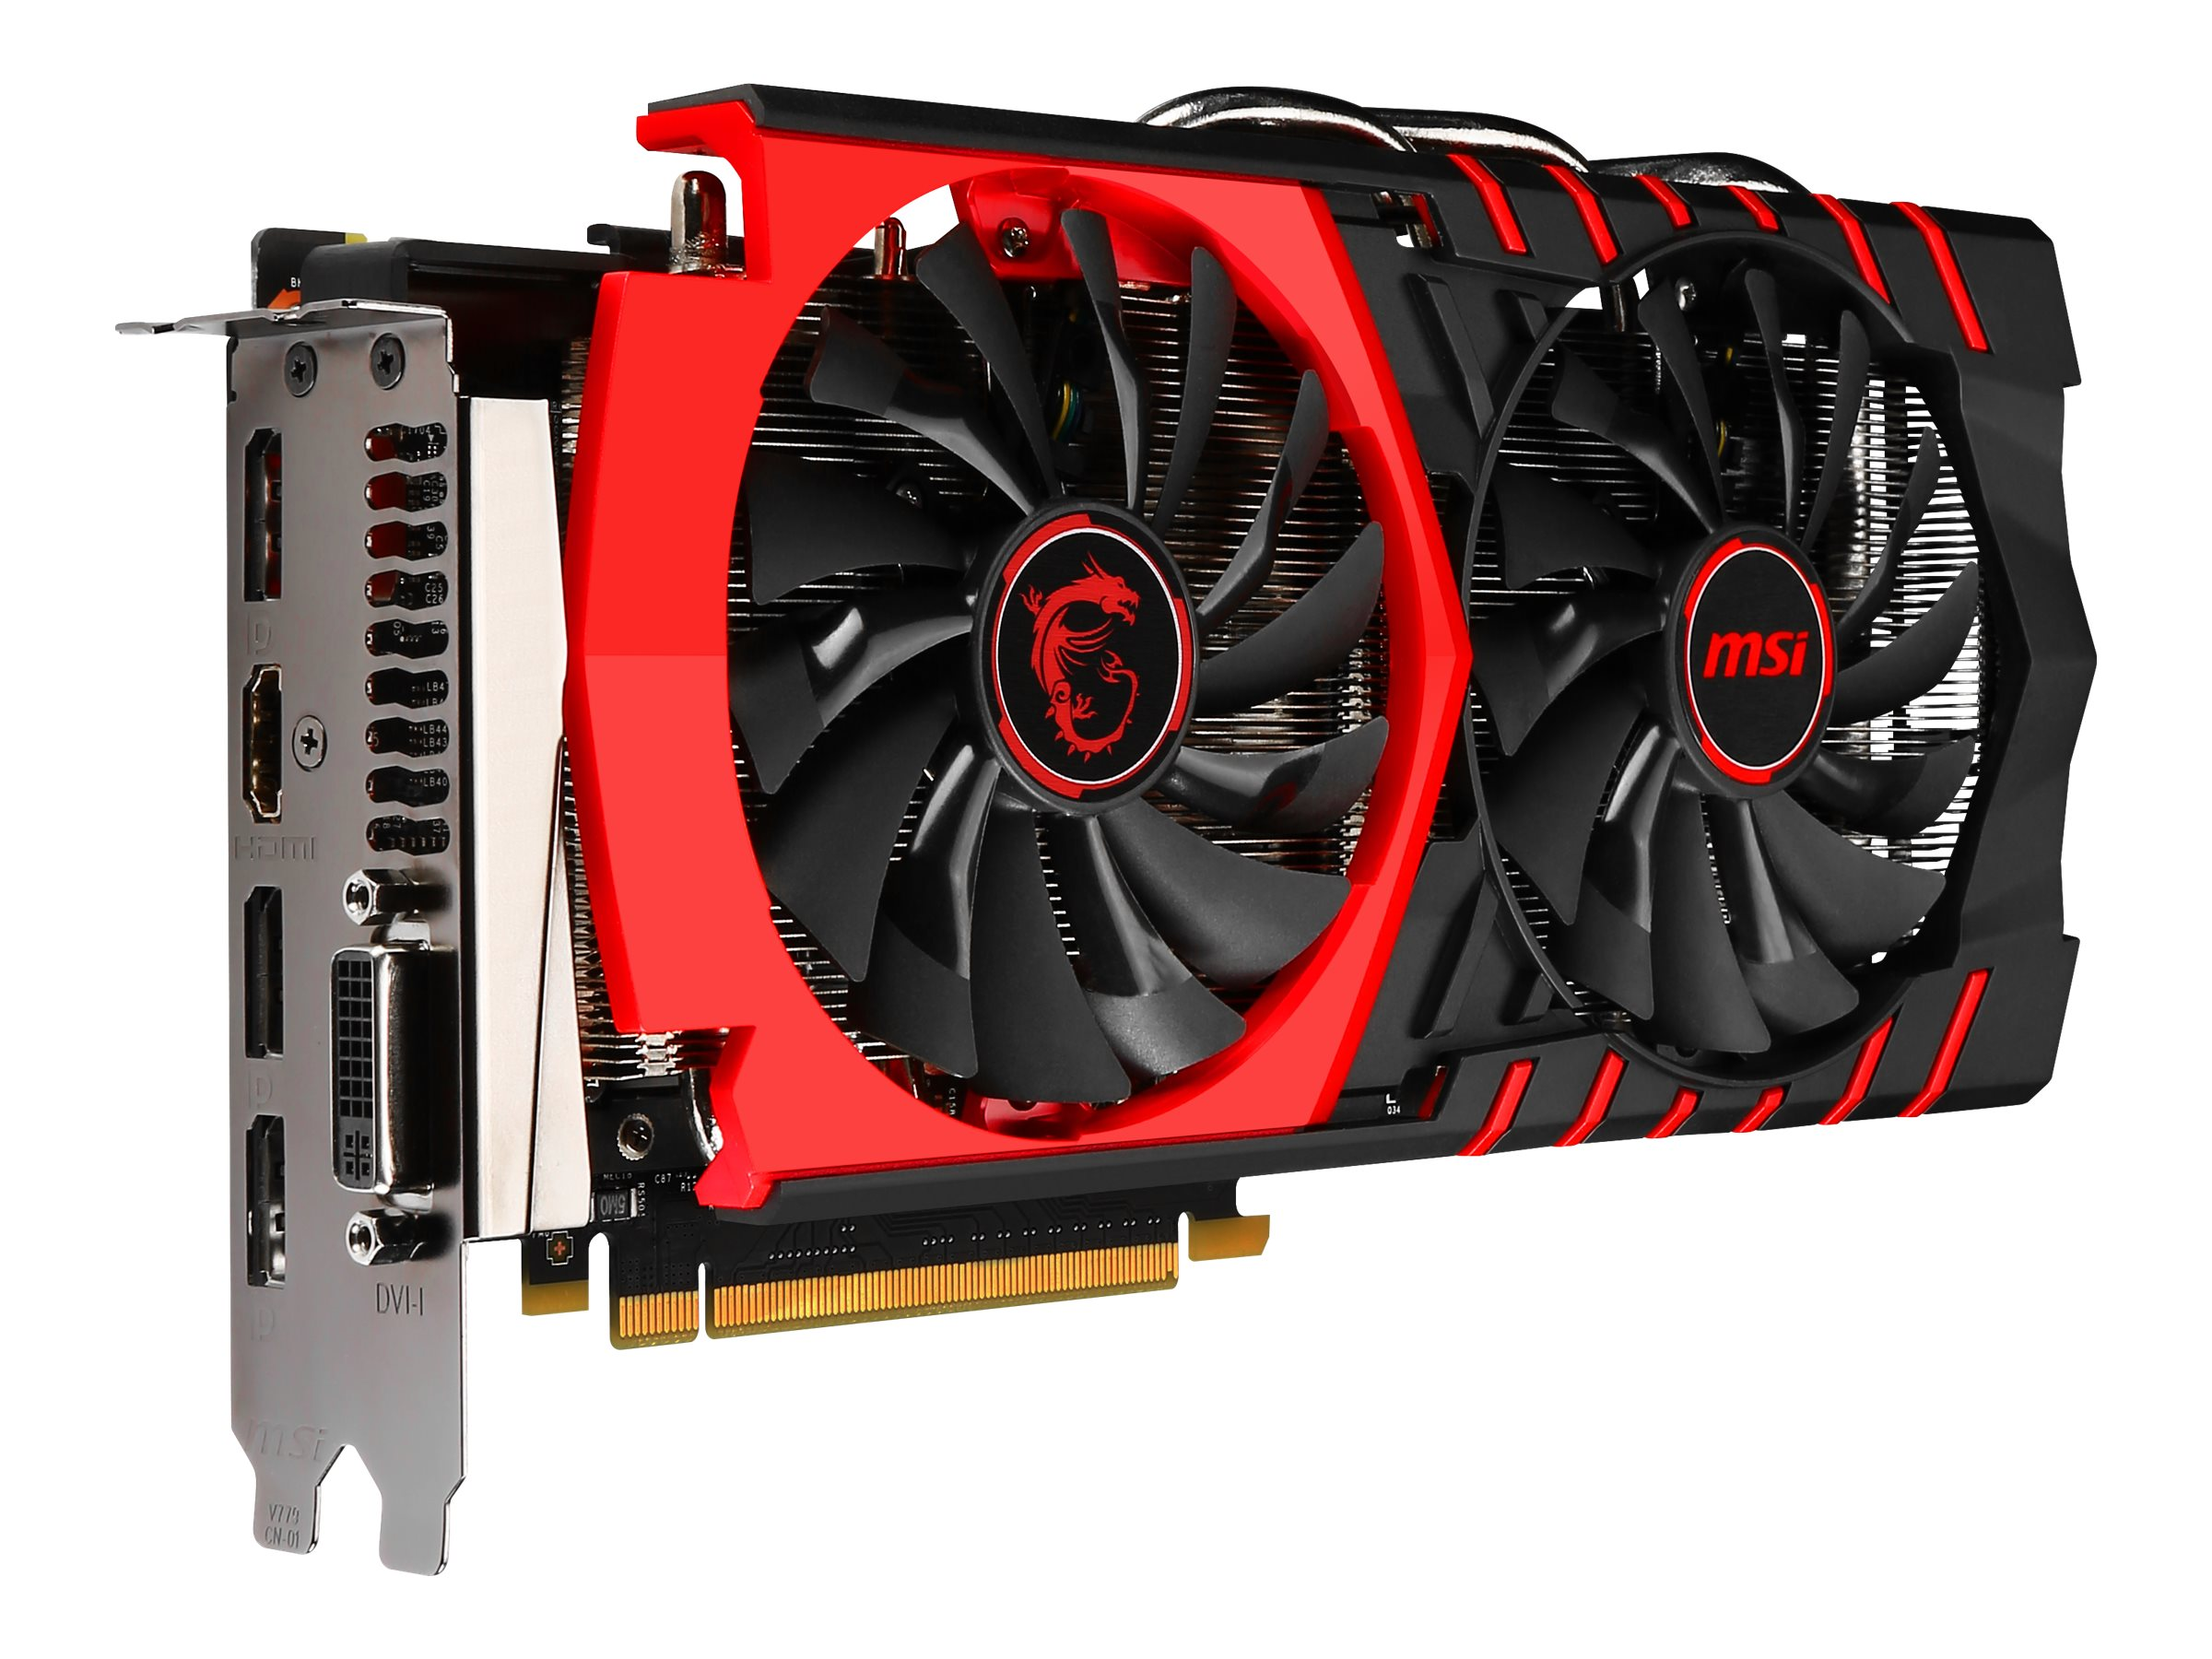 Microstar GeForce GTX 960 PCIe 3.0 Graphics Card, 2GB GDDR5, GTX 960 GAMING 2G, 18363803, Graphics/Video Accelerators